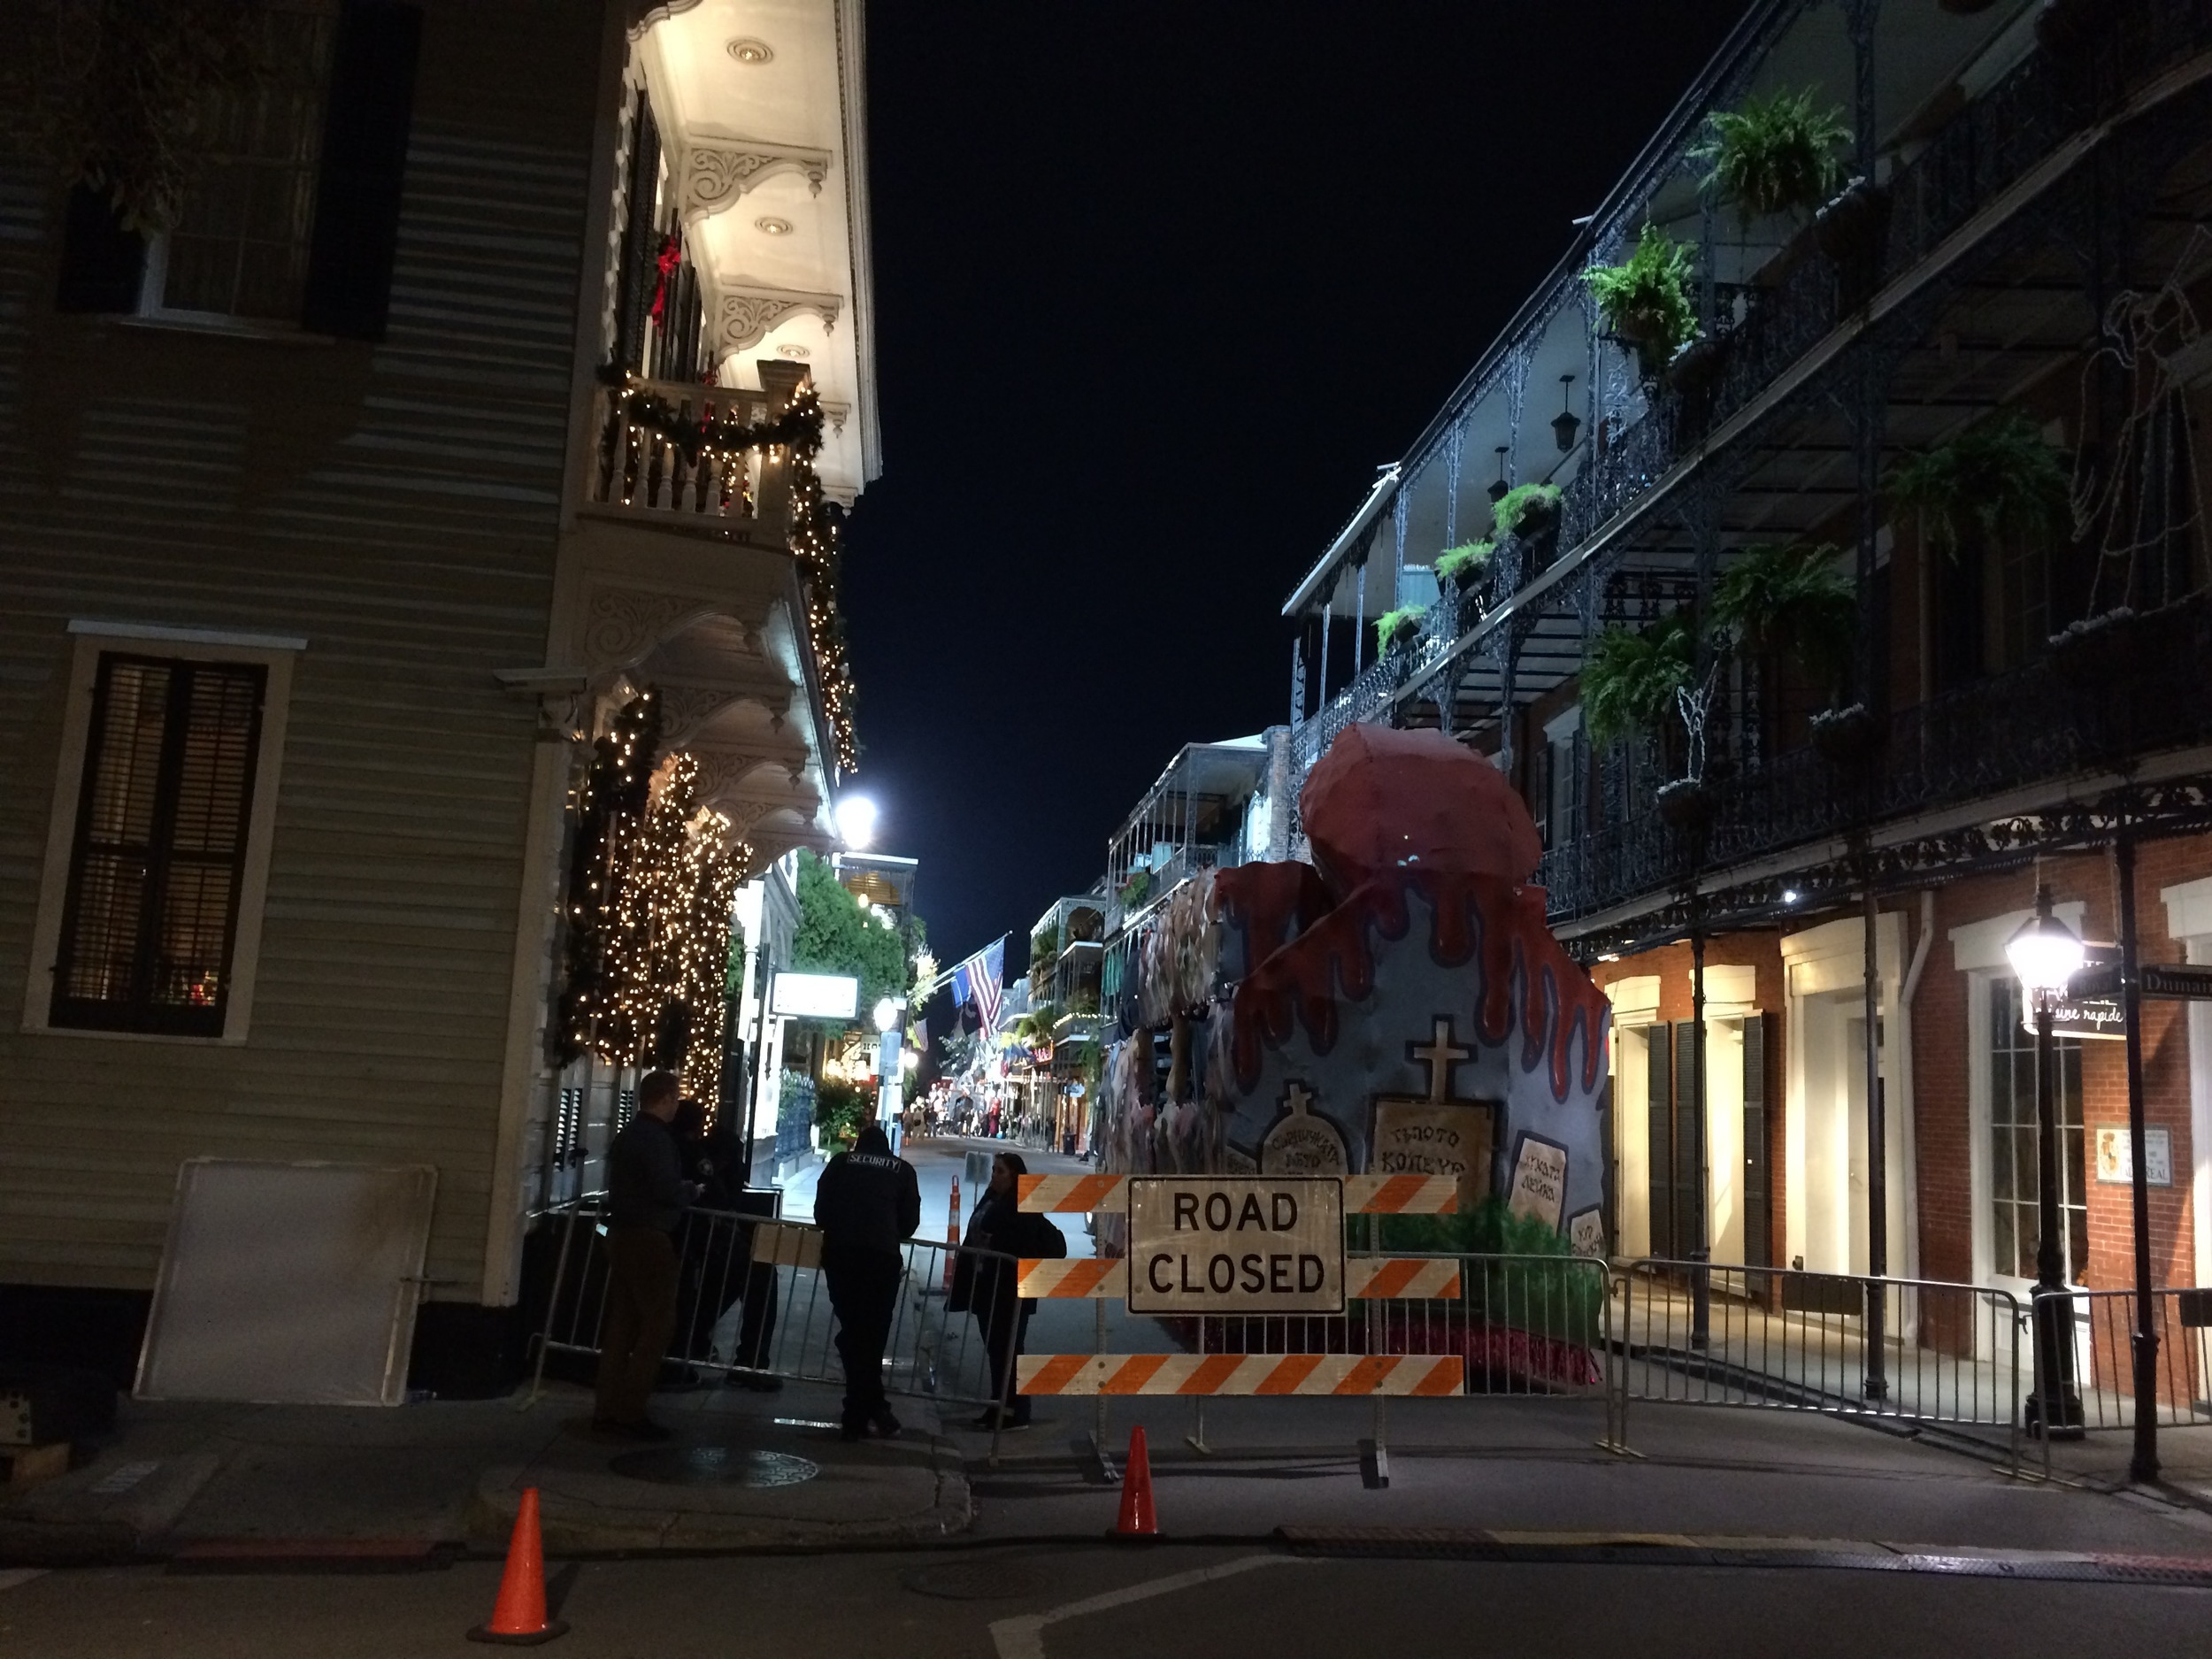 The evening after the first video shoot, we roamed the French Quarter and found a larger-scale (Hollywood) production in progress.